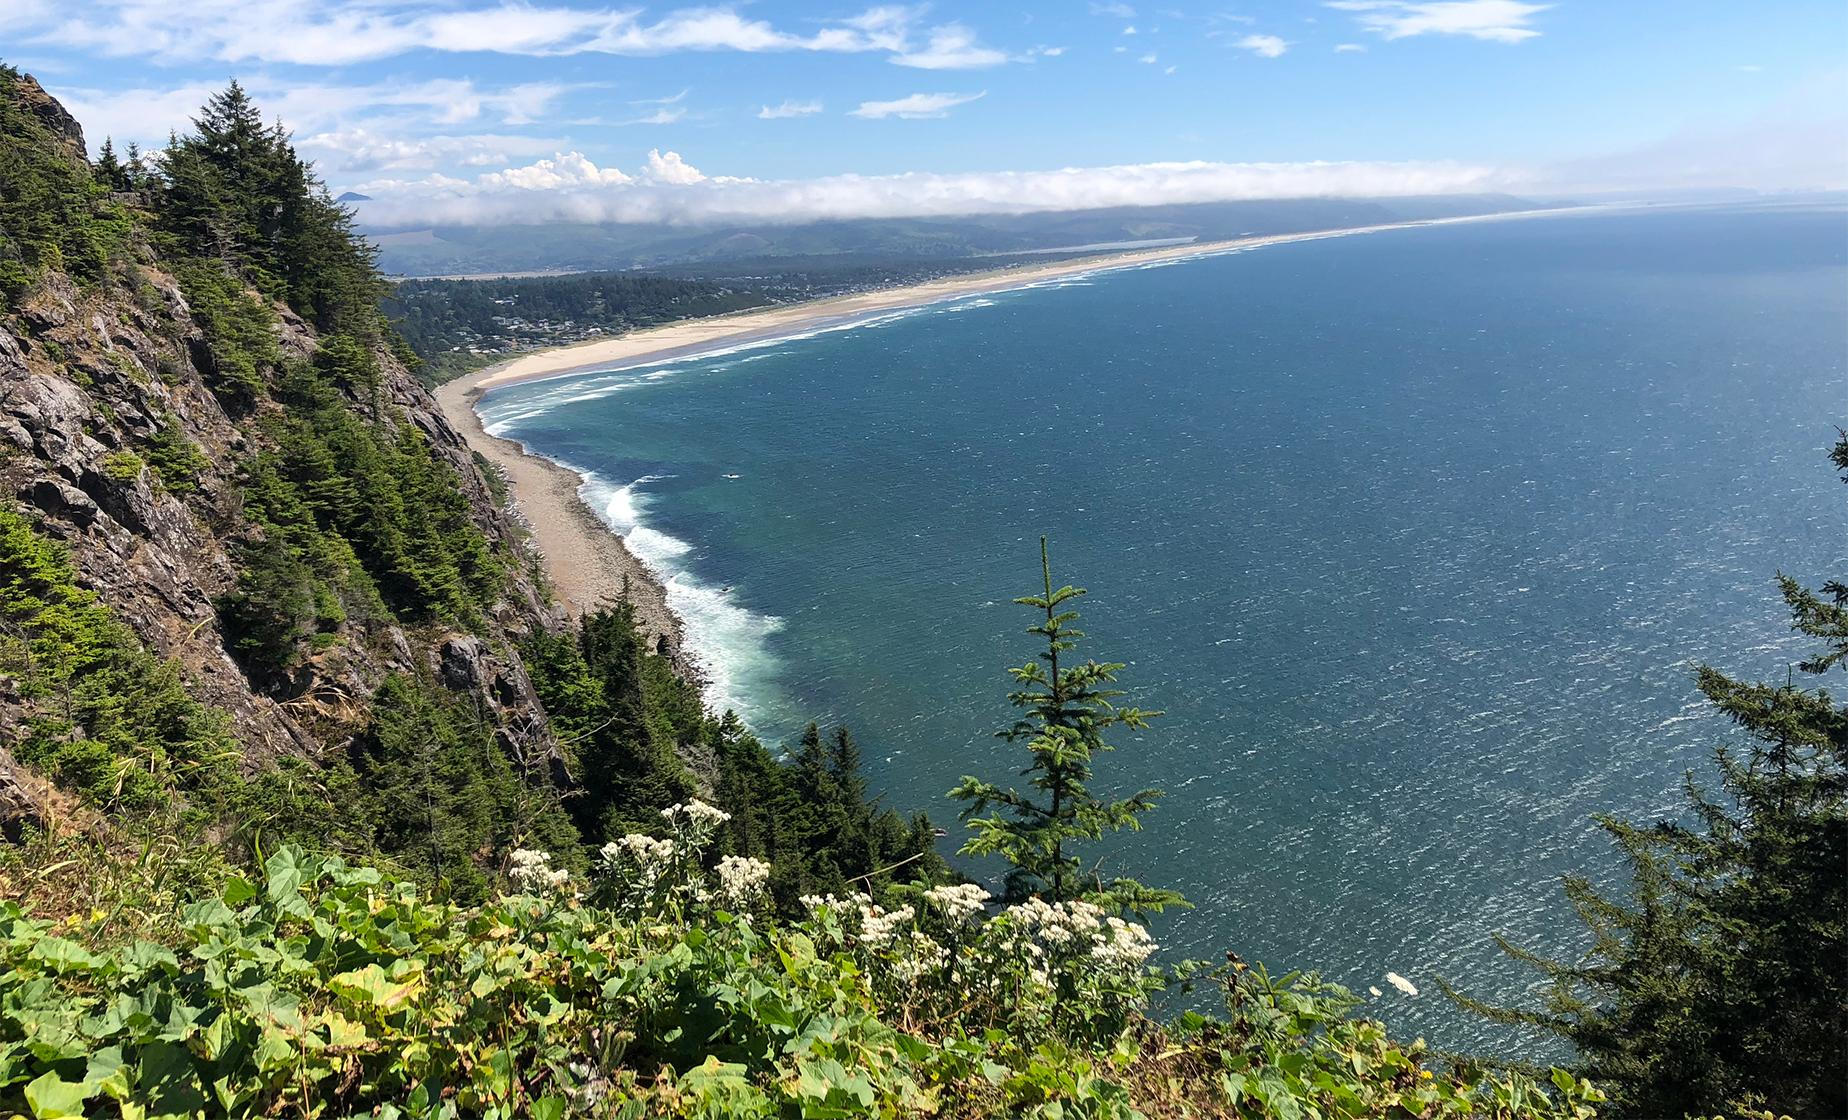 Astoria, Cannon Beach and Tillamook Cheese Factory